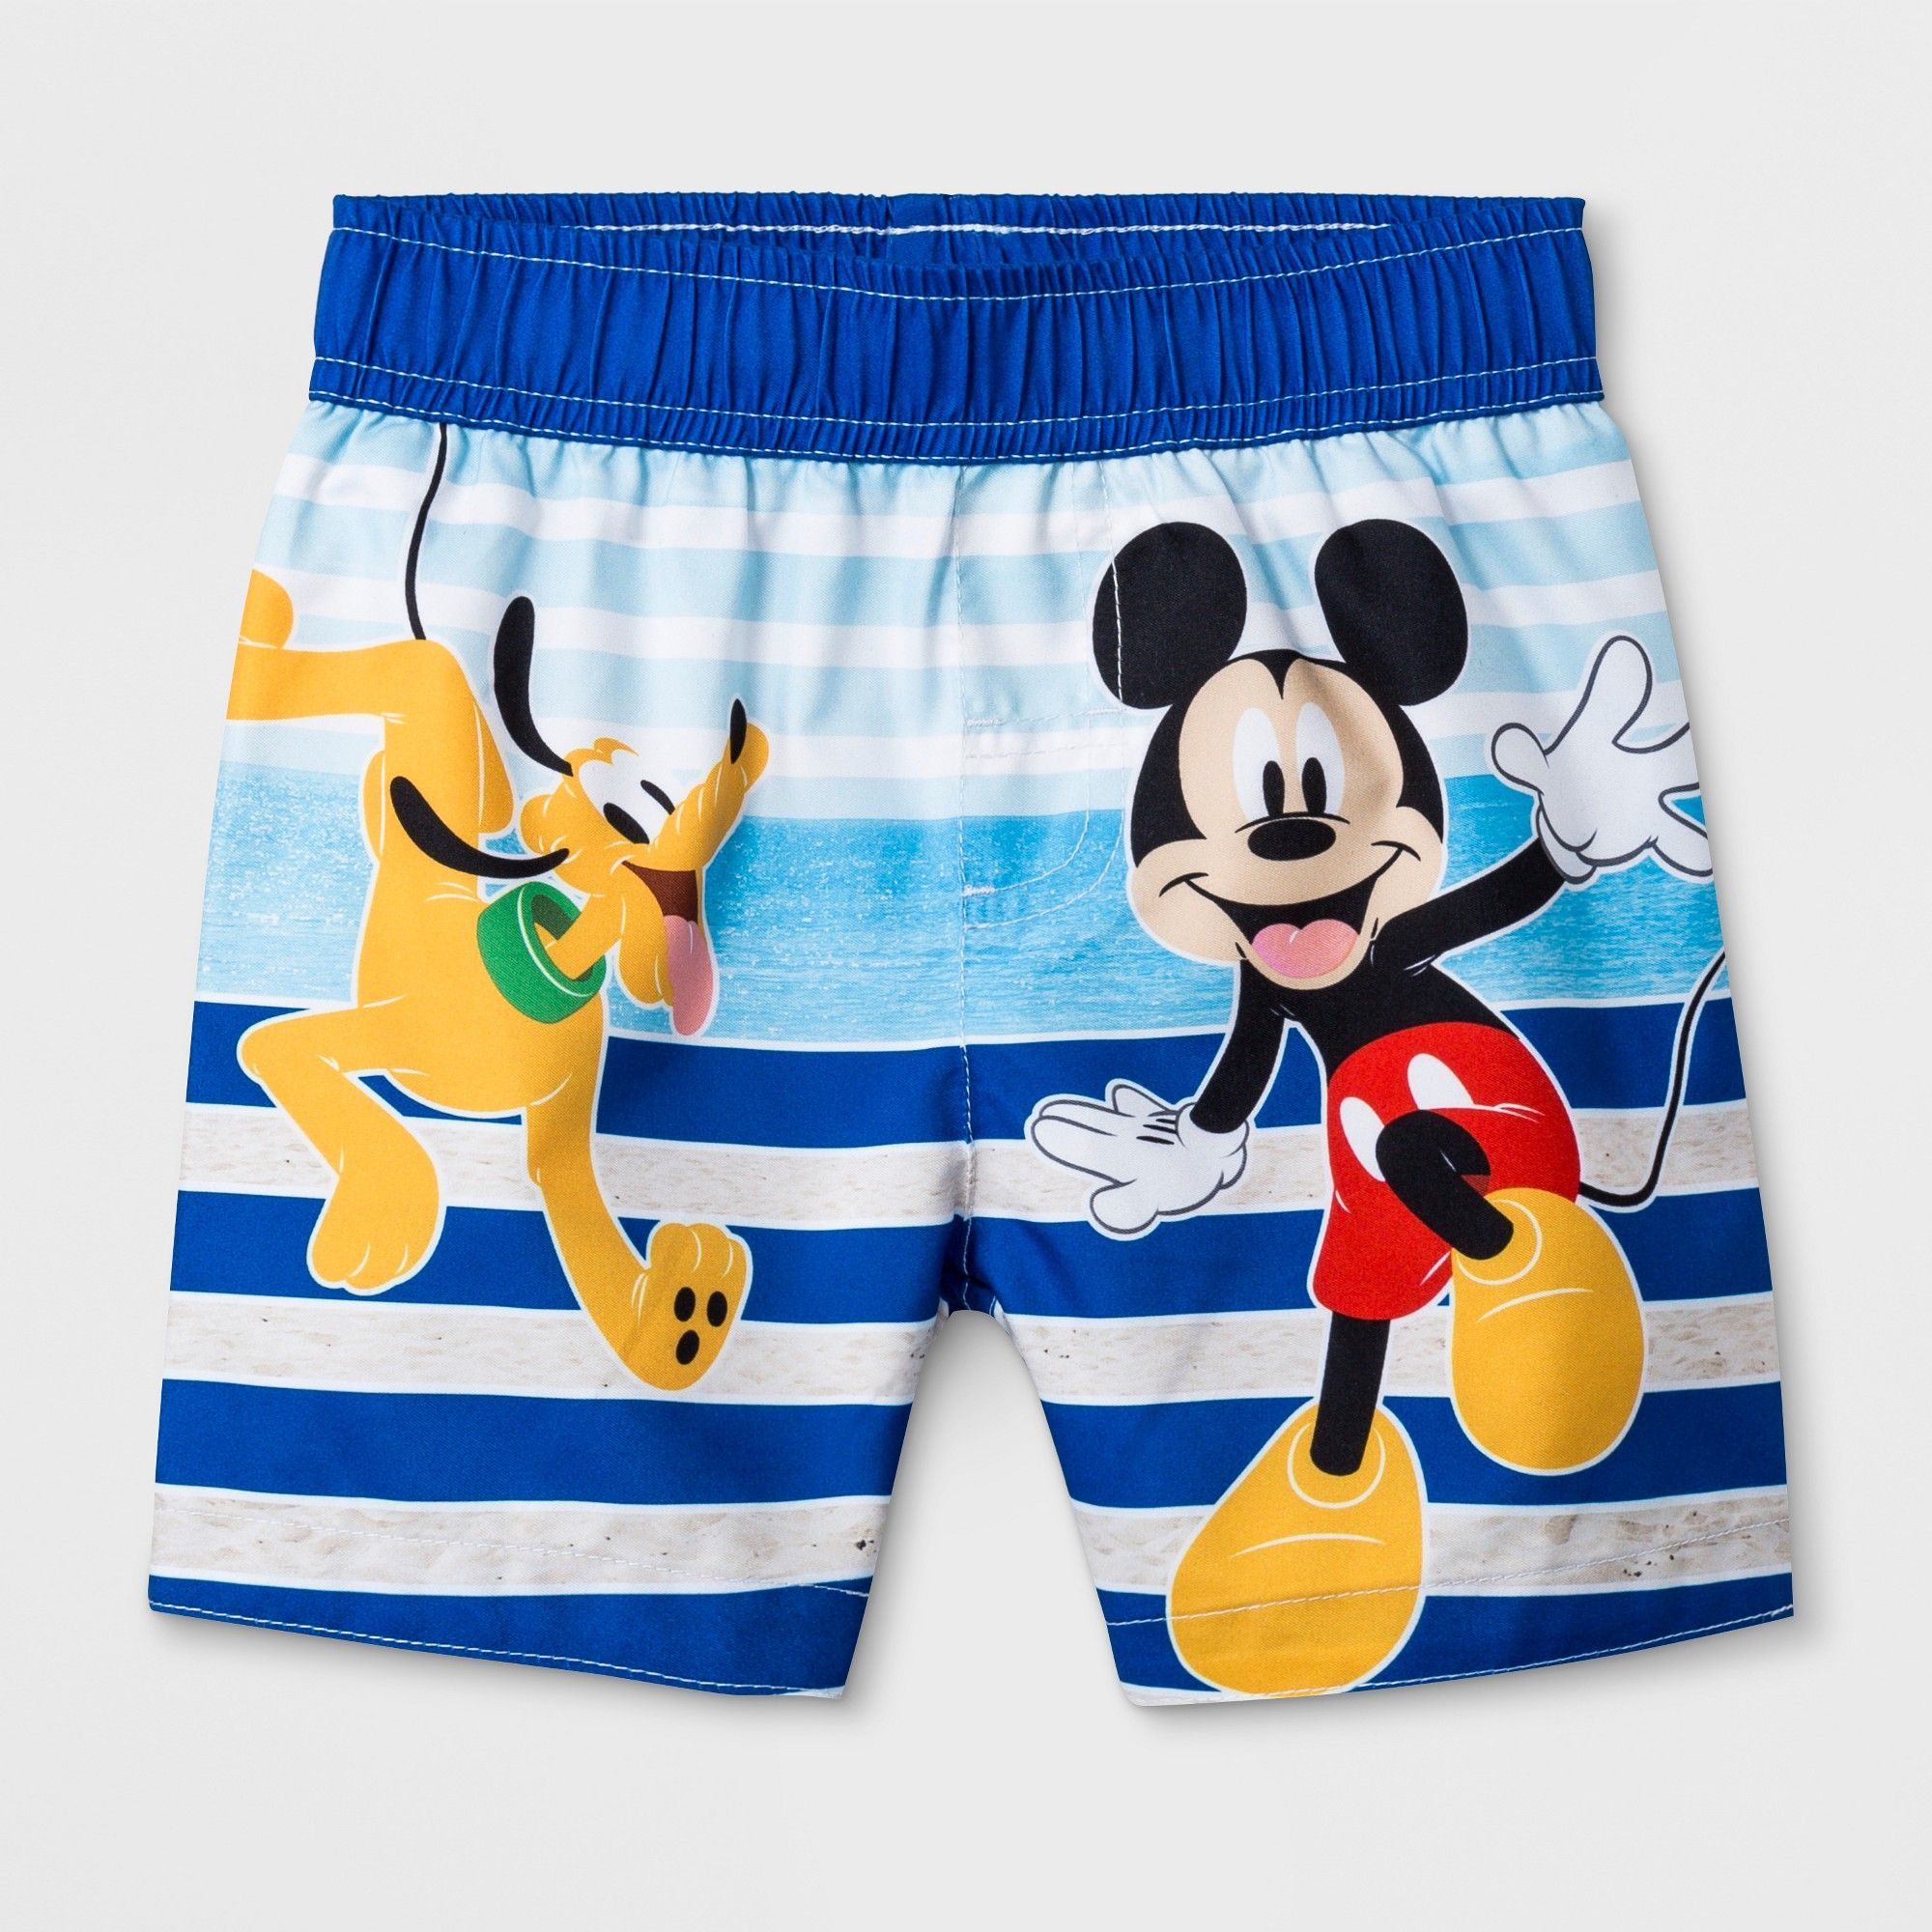 50de1ac5ac7f8 Toddler Boys' Mickey Mouse & Friends Swim Trunks - Blue 3T in 2019 ...